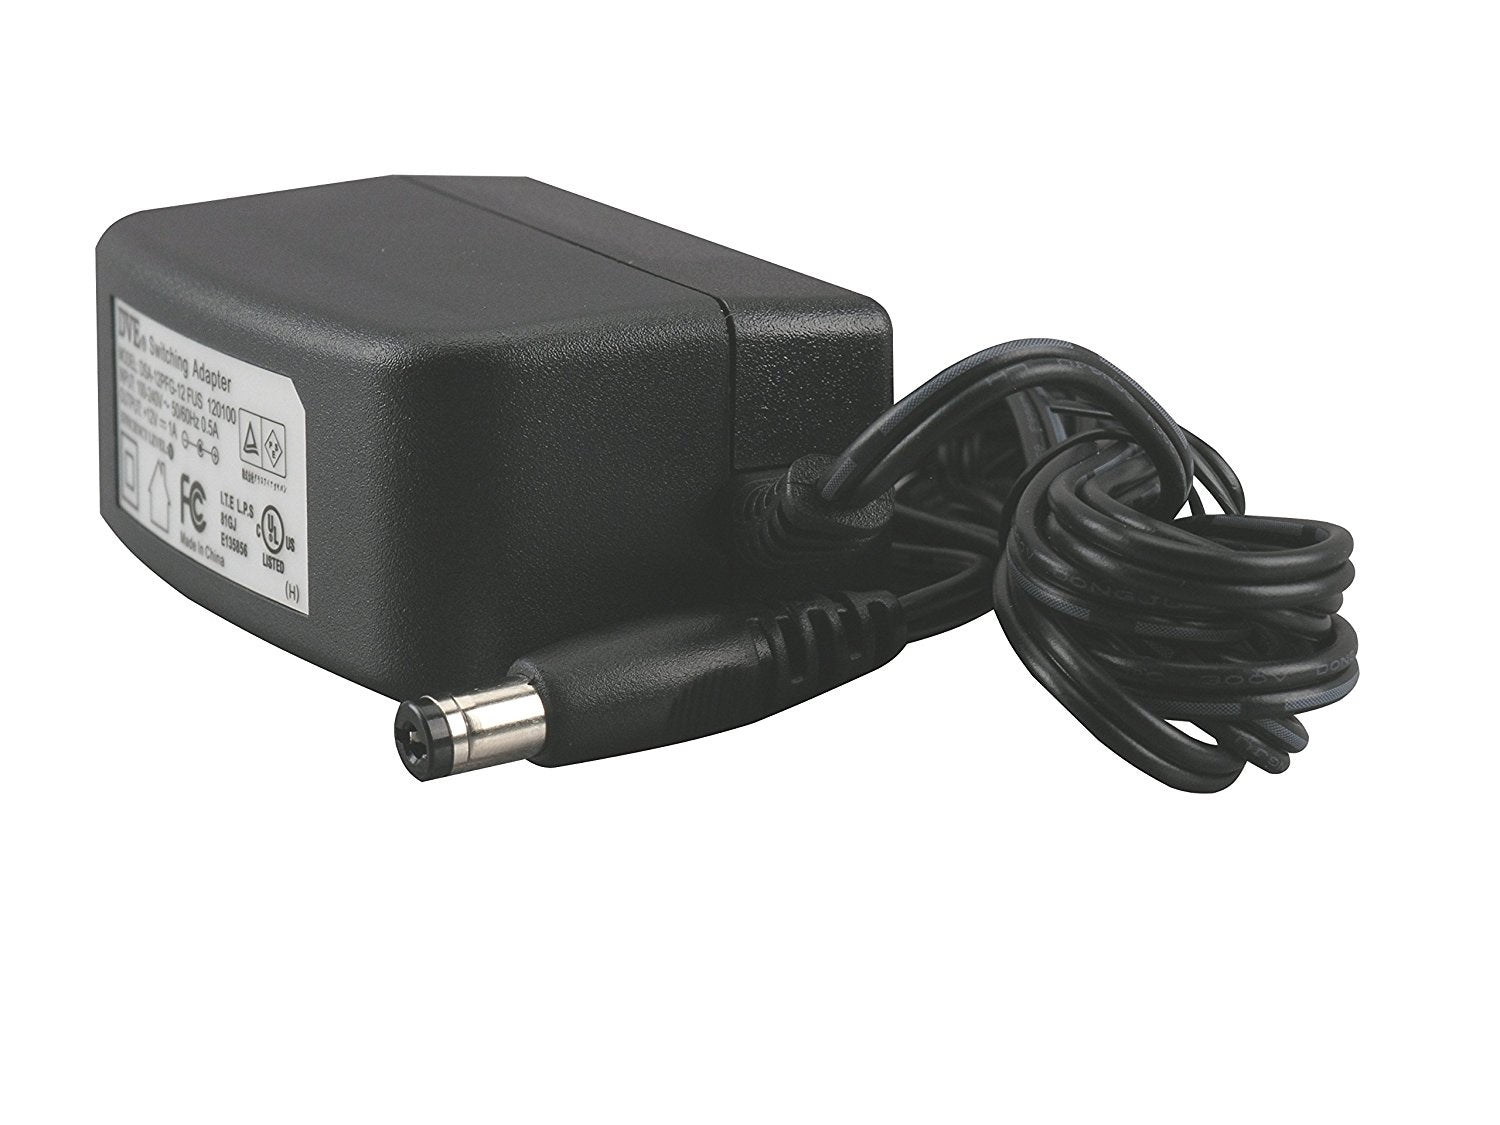 Power Adapter for ADC-VC726 & ADC-VC826